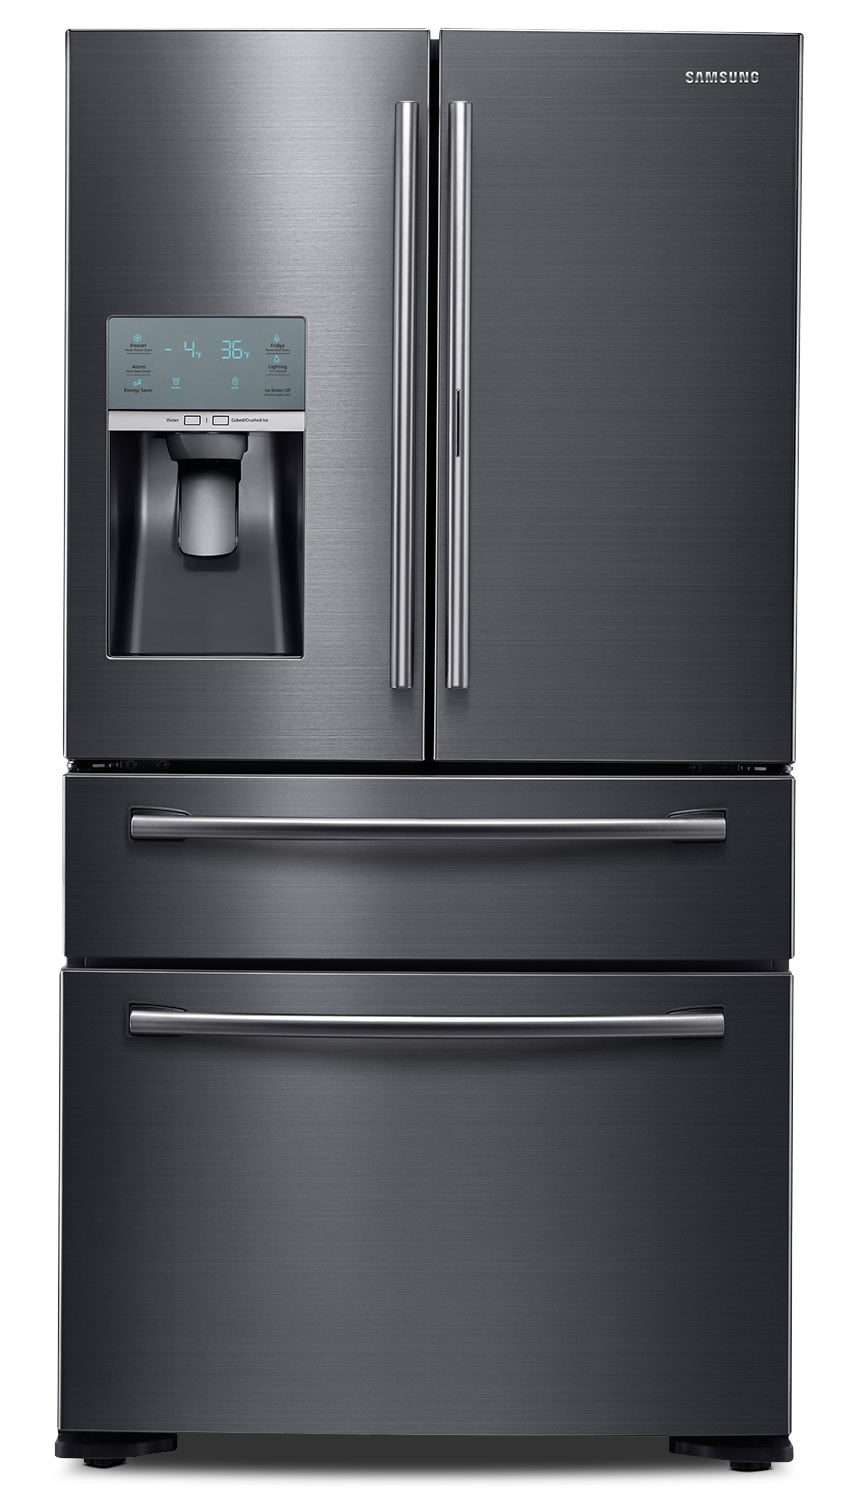 Samsung Black Stainless Steel Counter-Depth French Door Refrigerator (22 Cu. Ft.) - RF22KREDBSG/AA